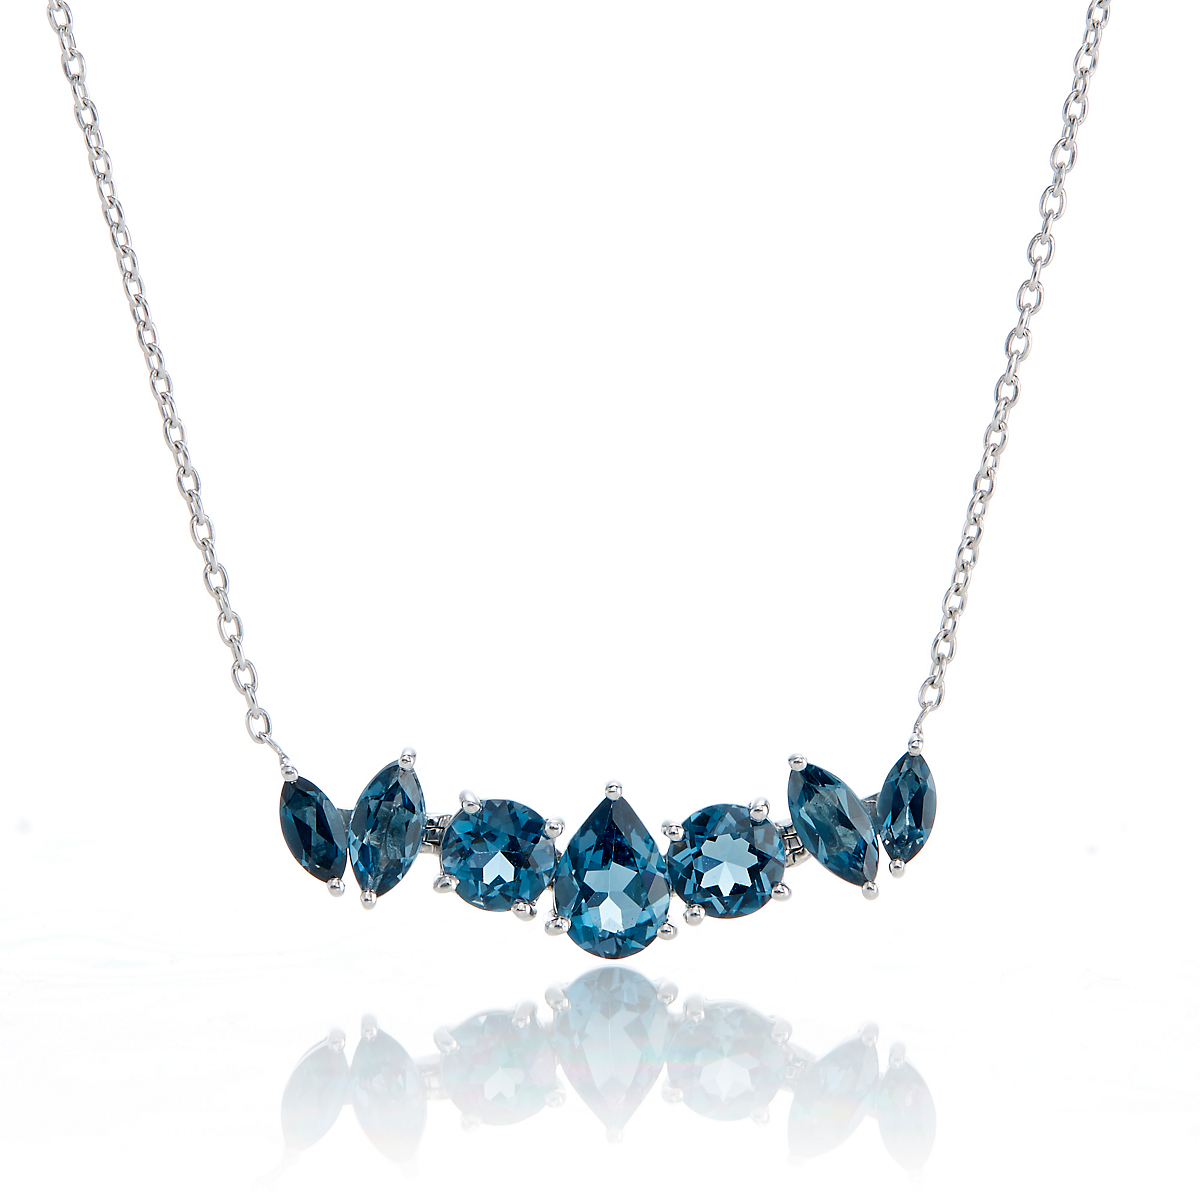 Gump's 7-Stone London Blue Topaz Pendant Necklace